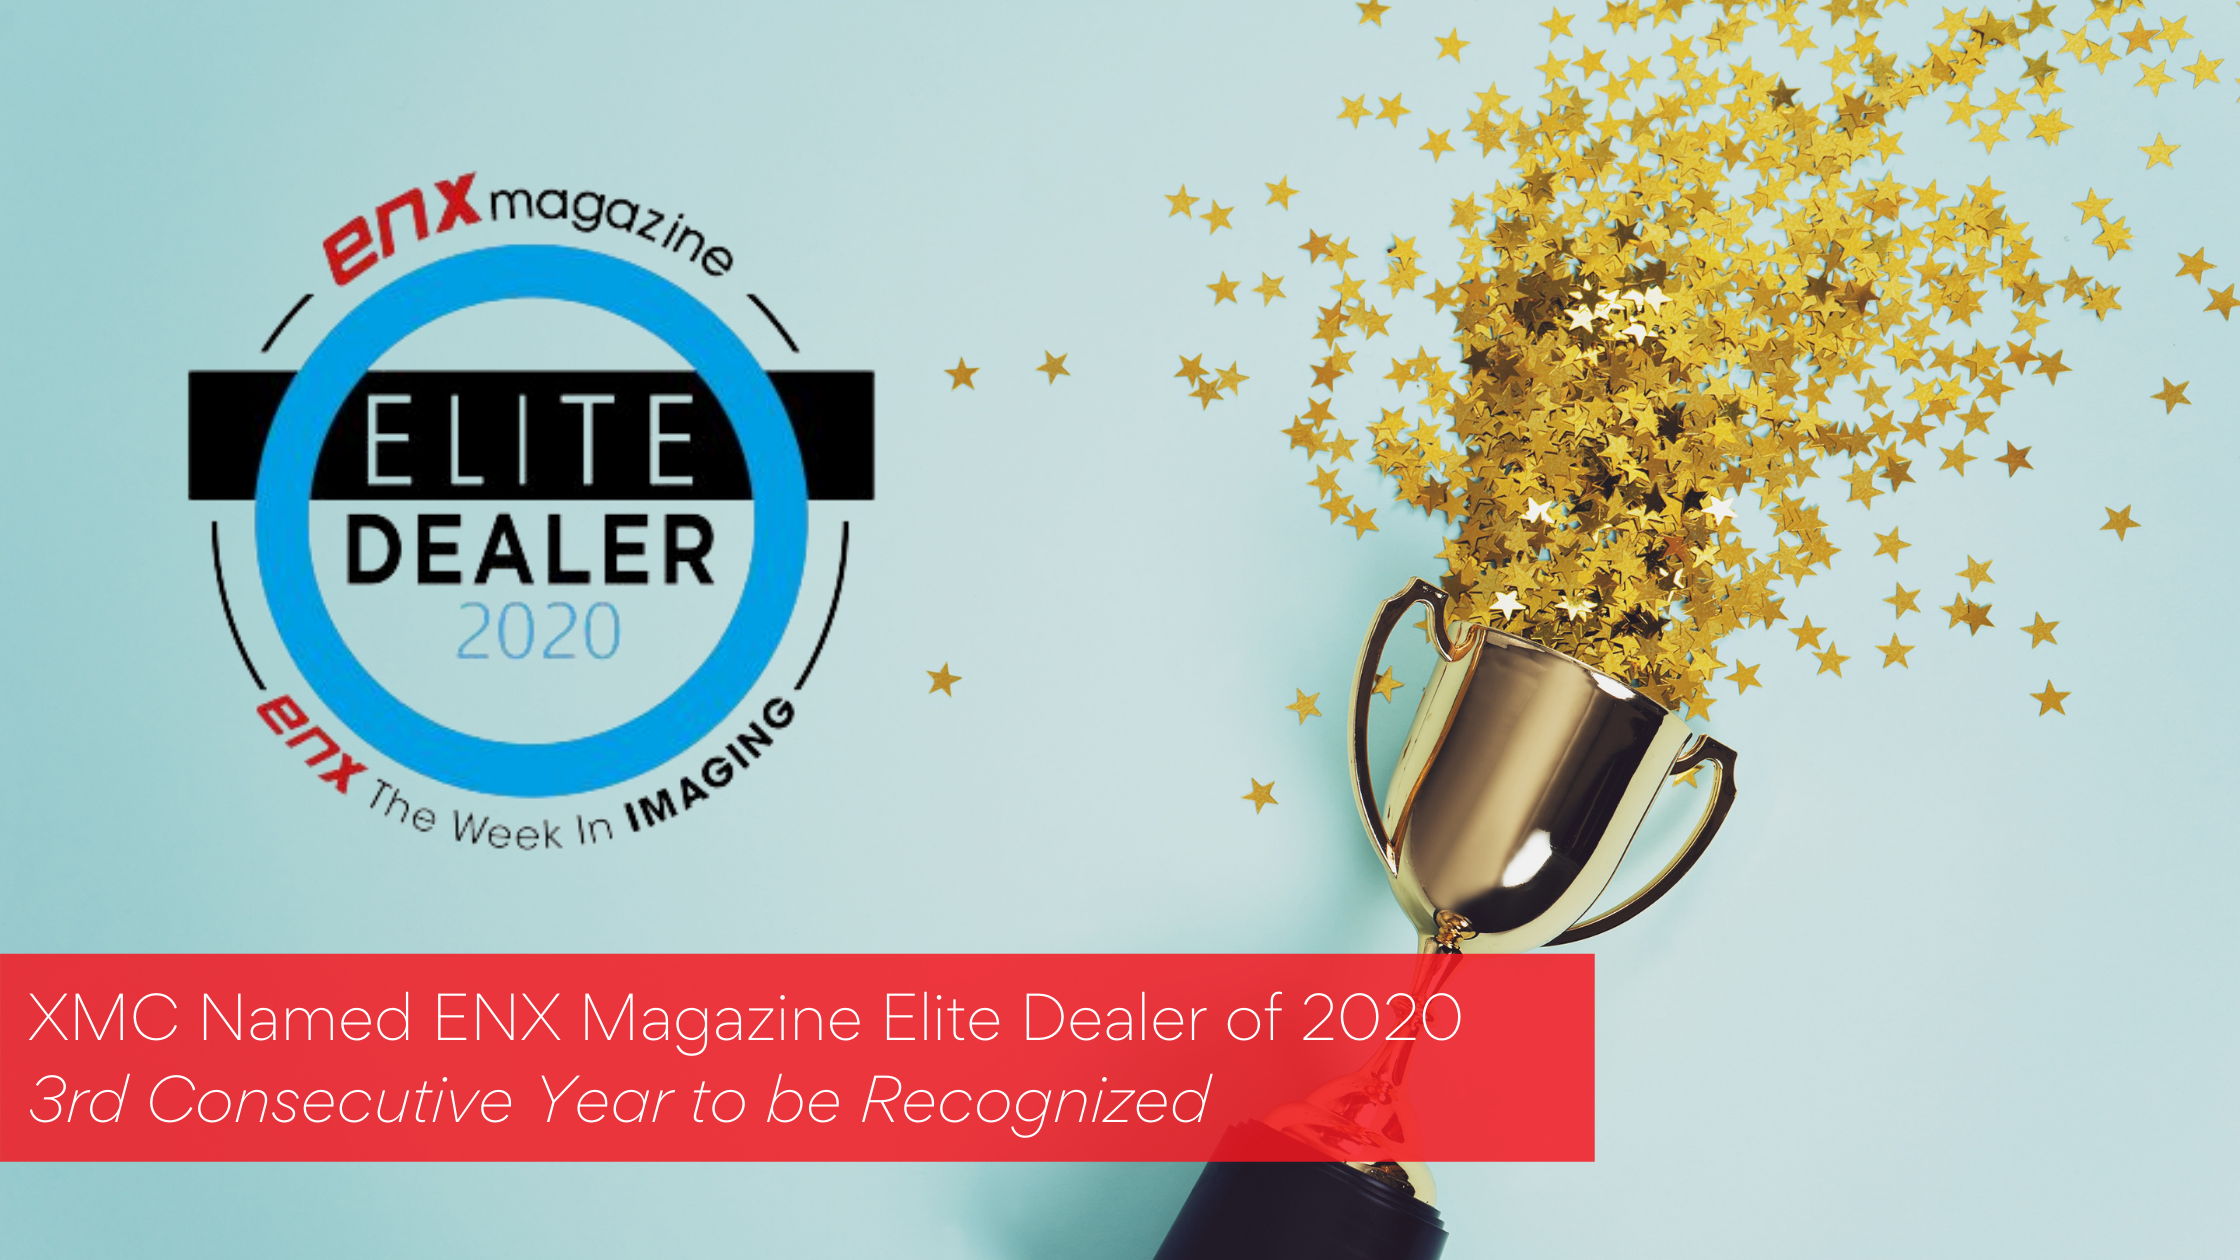 XMC Named 2020 Elite Dealer by ENX Magazine